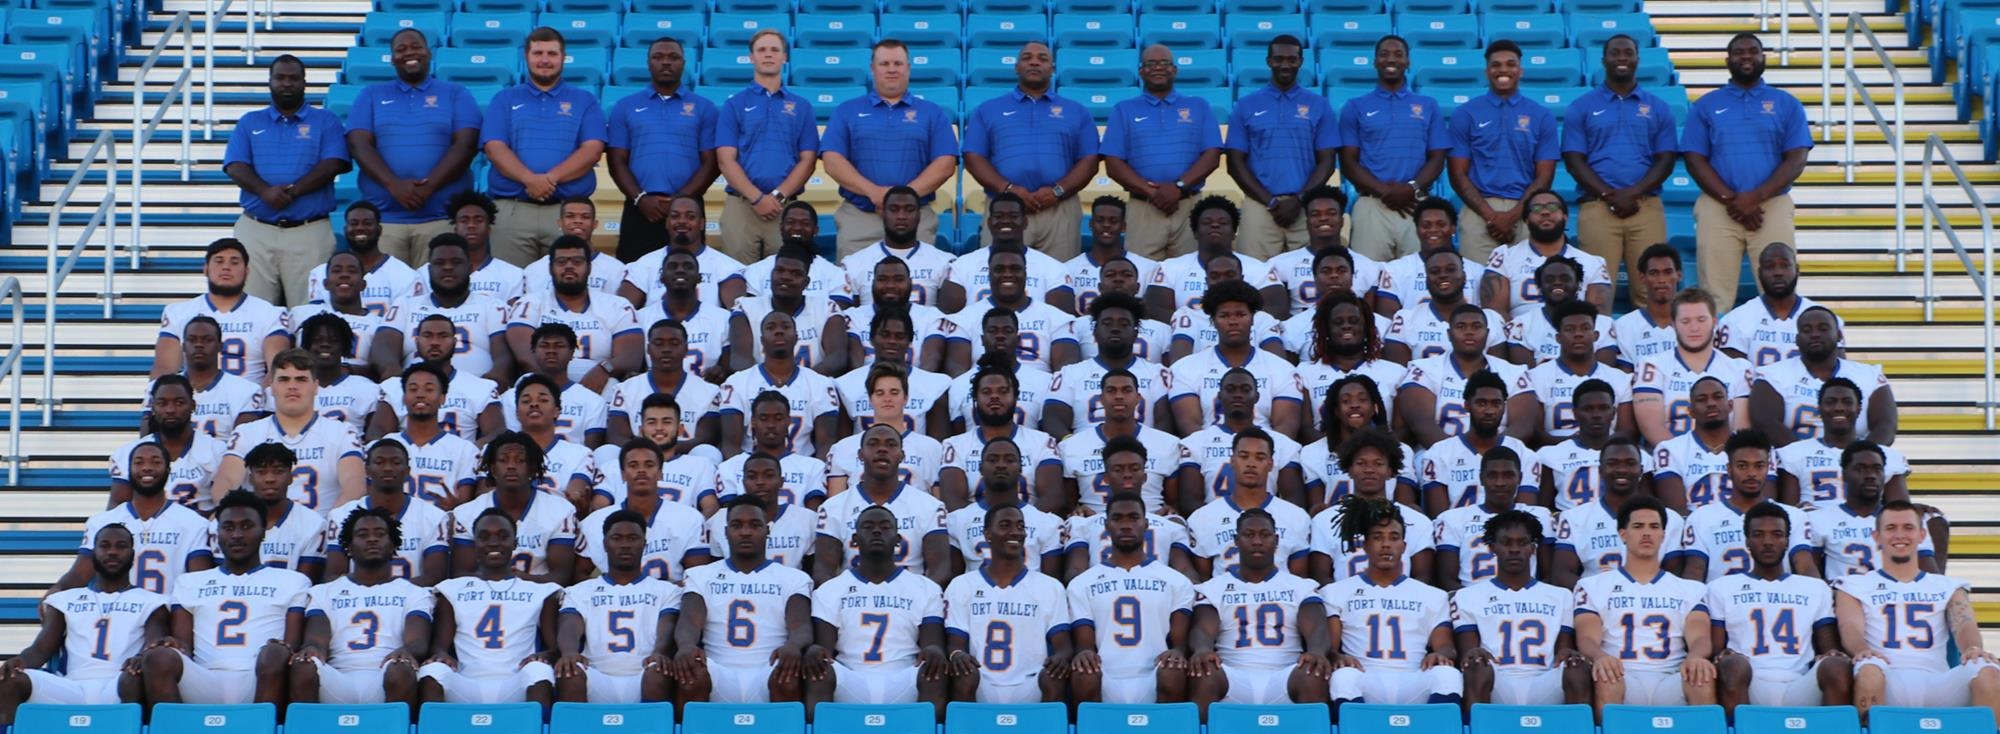 Alabama Football Roster 2018 Football Roster Fvsu Athletics